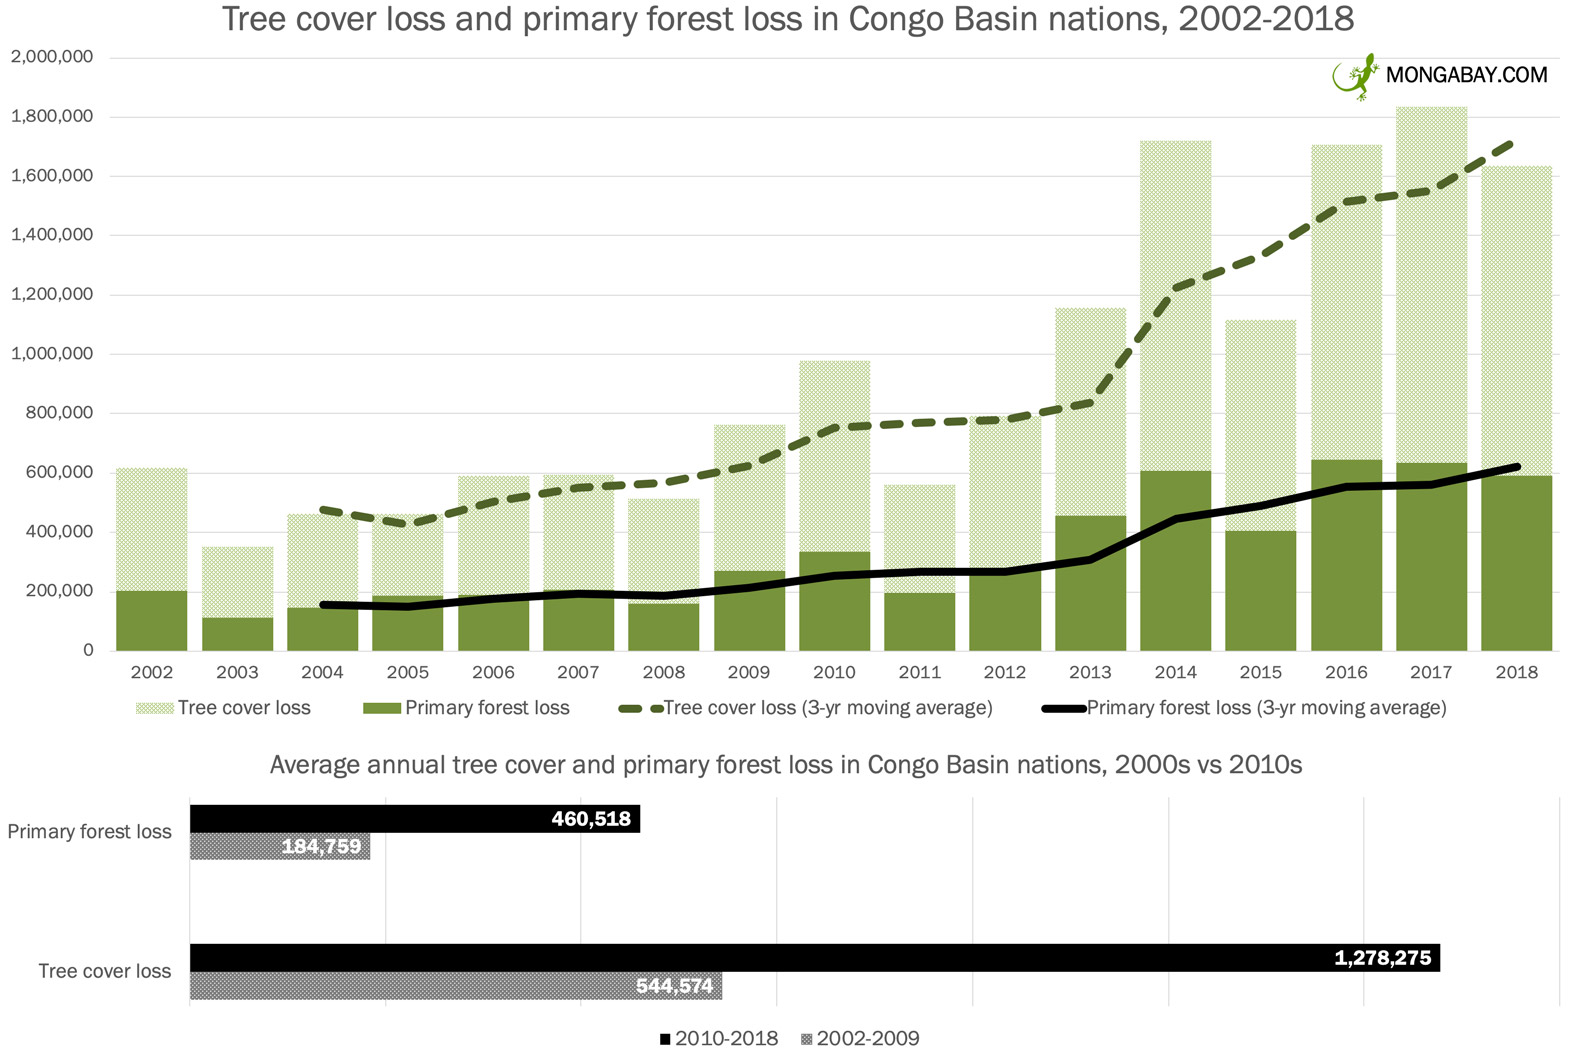 Tree cover loss and primary forest loss in Congo Basin countries (Democratic Republic of the Congo, Republic of Congo, Cameroon, Equatorial Guinea, Gabon, and Central African Republic) from 2002 to 2018 according to data from Hansen et al 2019.